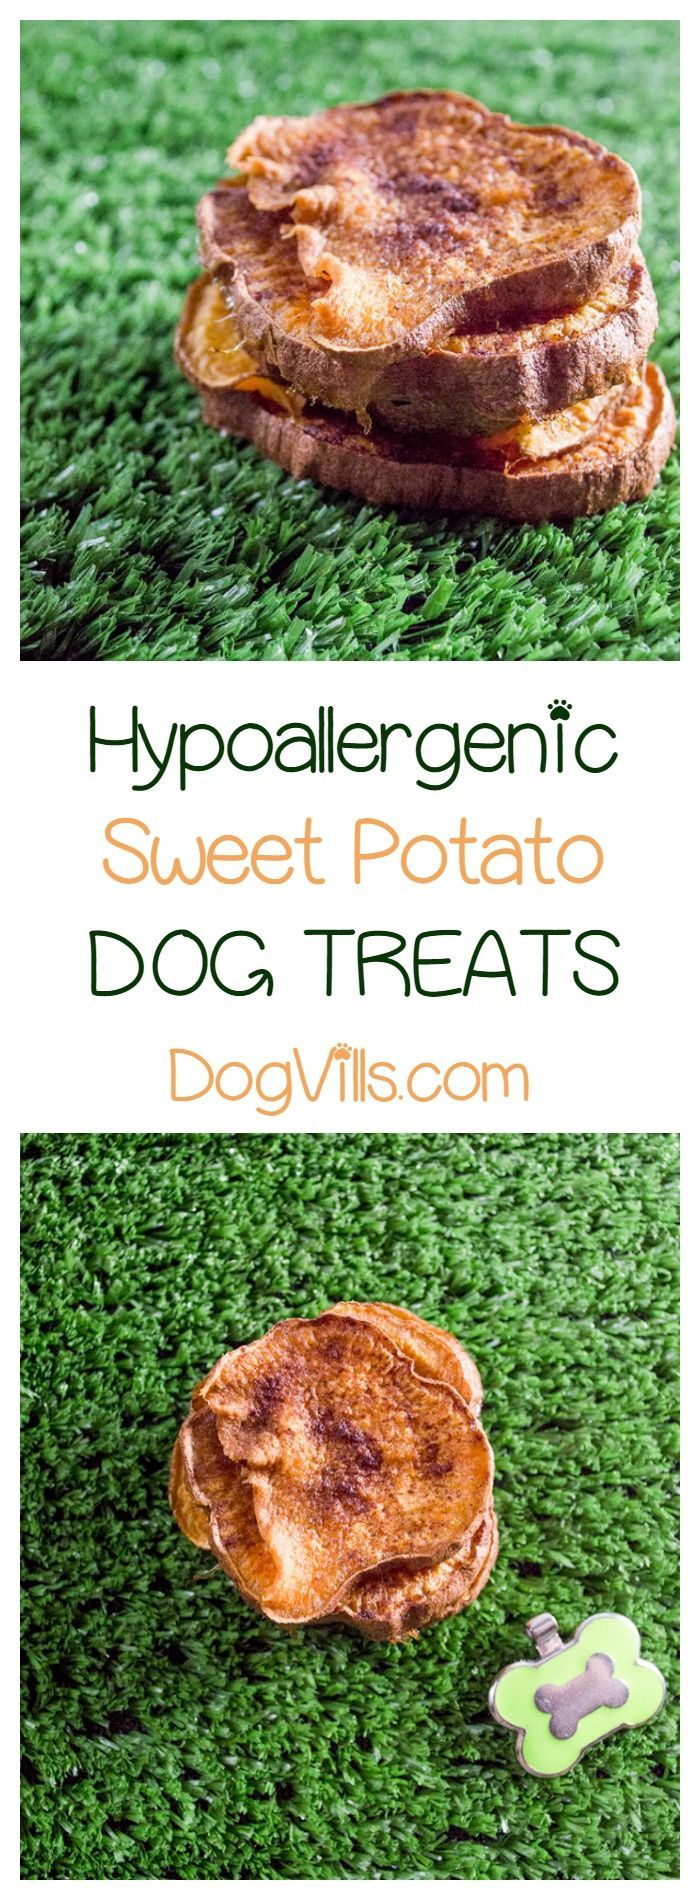 "When it comes to making a hypoallergenic dog treat, less is definitely more. The fewer ingredients you put into your homemade treats, the less likely you are to aggravate your pup's allergies. This easy sweet potato ""jerky"" chew dog treats recipe has only three ingredients. Check it out!"